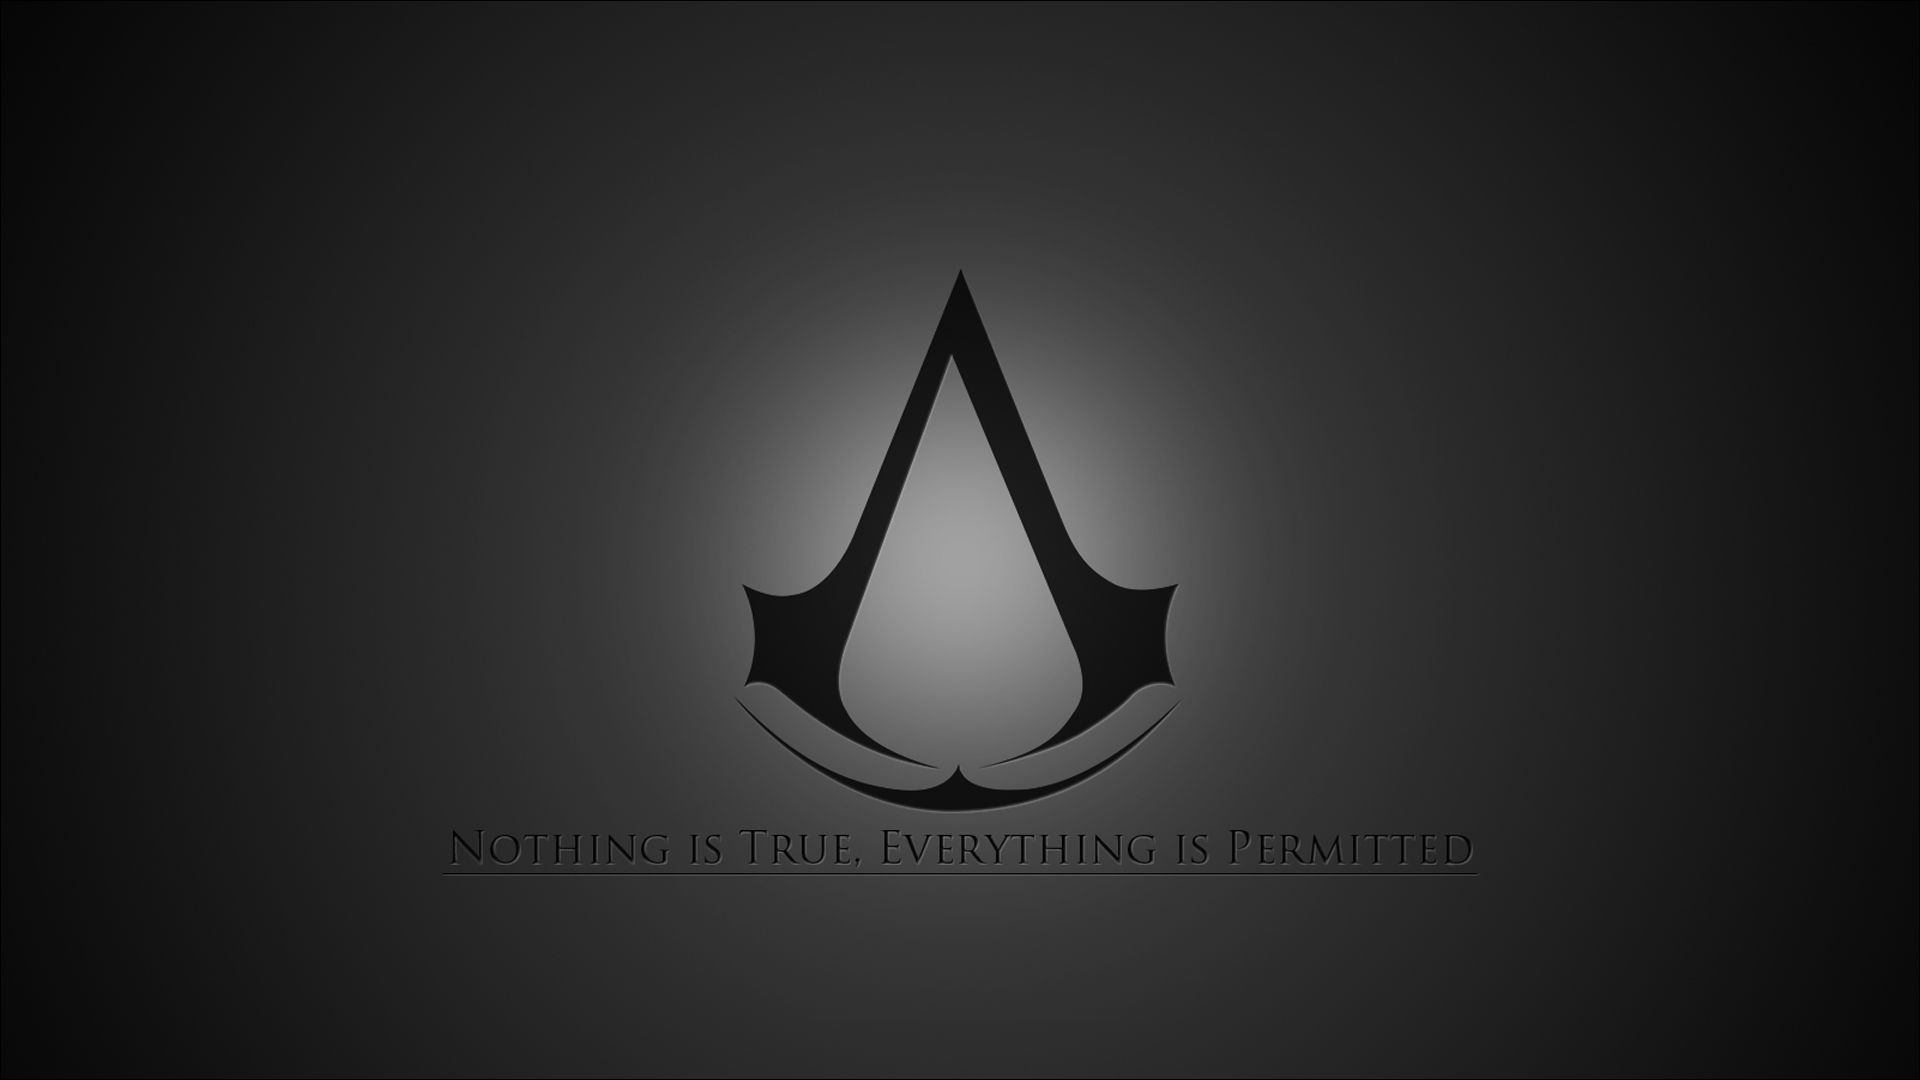 Assassin S Creed 3 Symbol Assassin S Creed 3 Symbol Wallpaper Hd 1080passassins Creed 3 Assassins Creed Vector Logos Te La Creiste